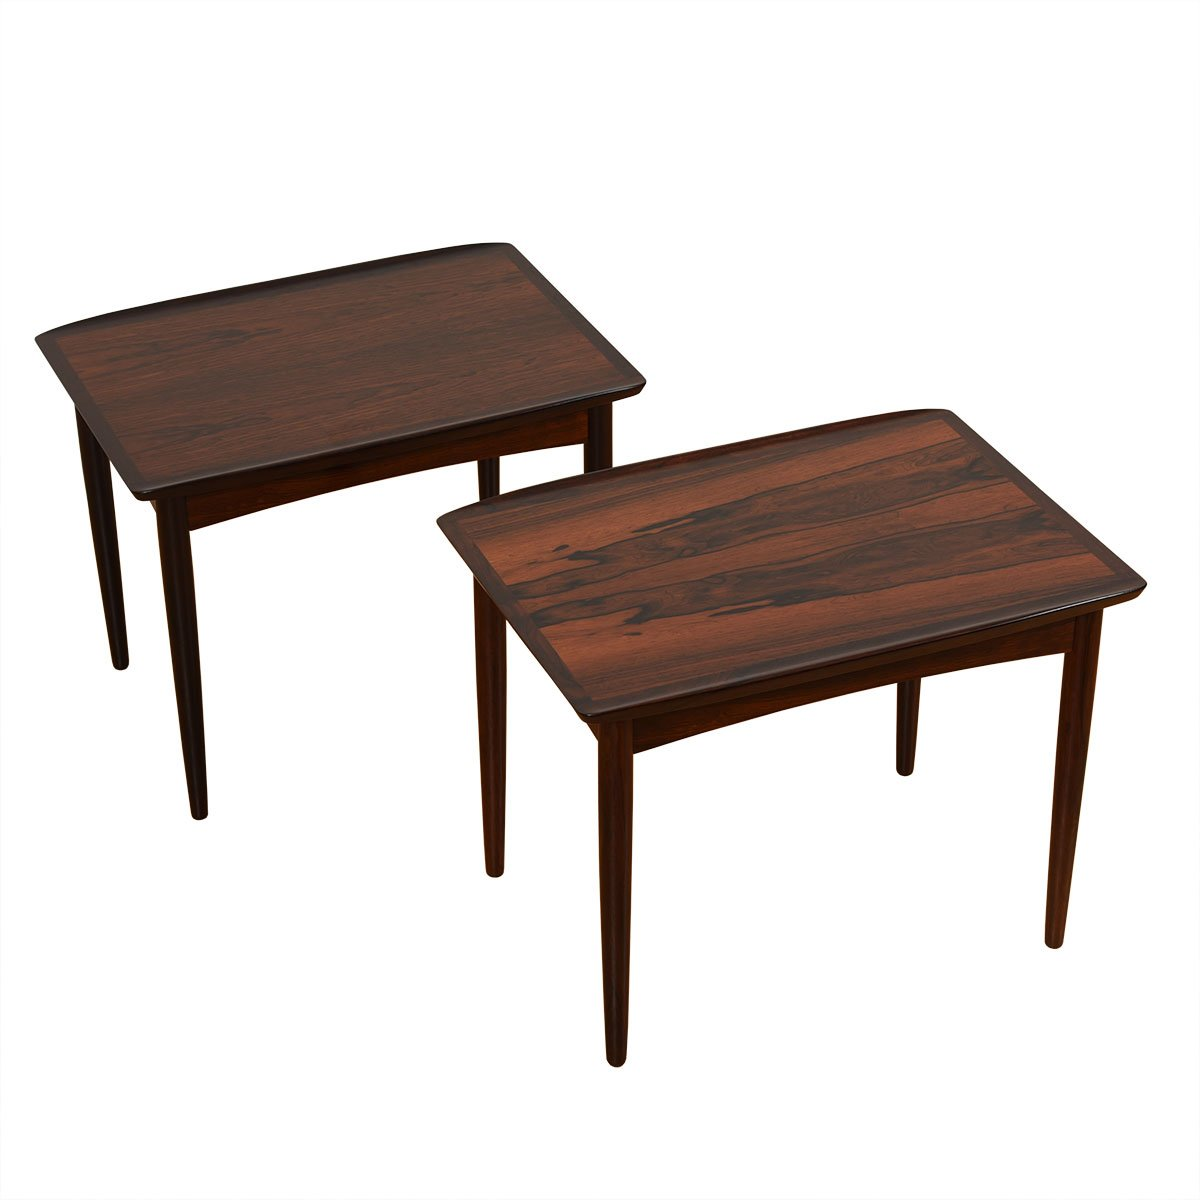 Pair of Danish Rosewood Raised Edge Accent / Side Tables